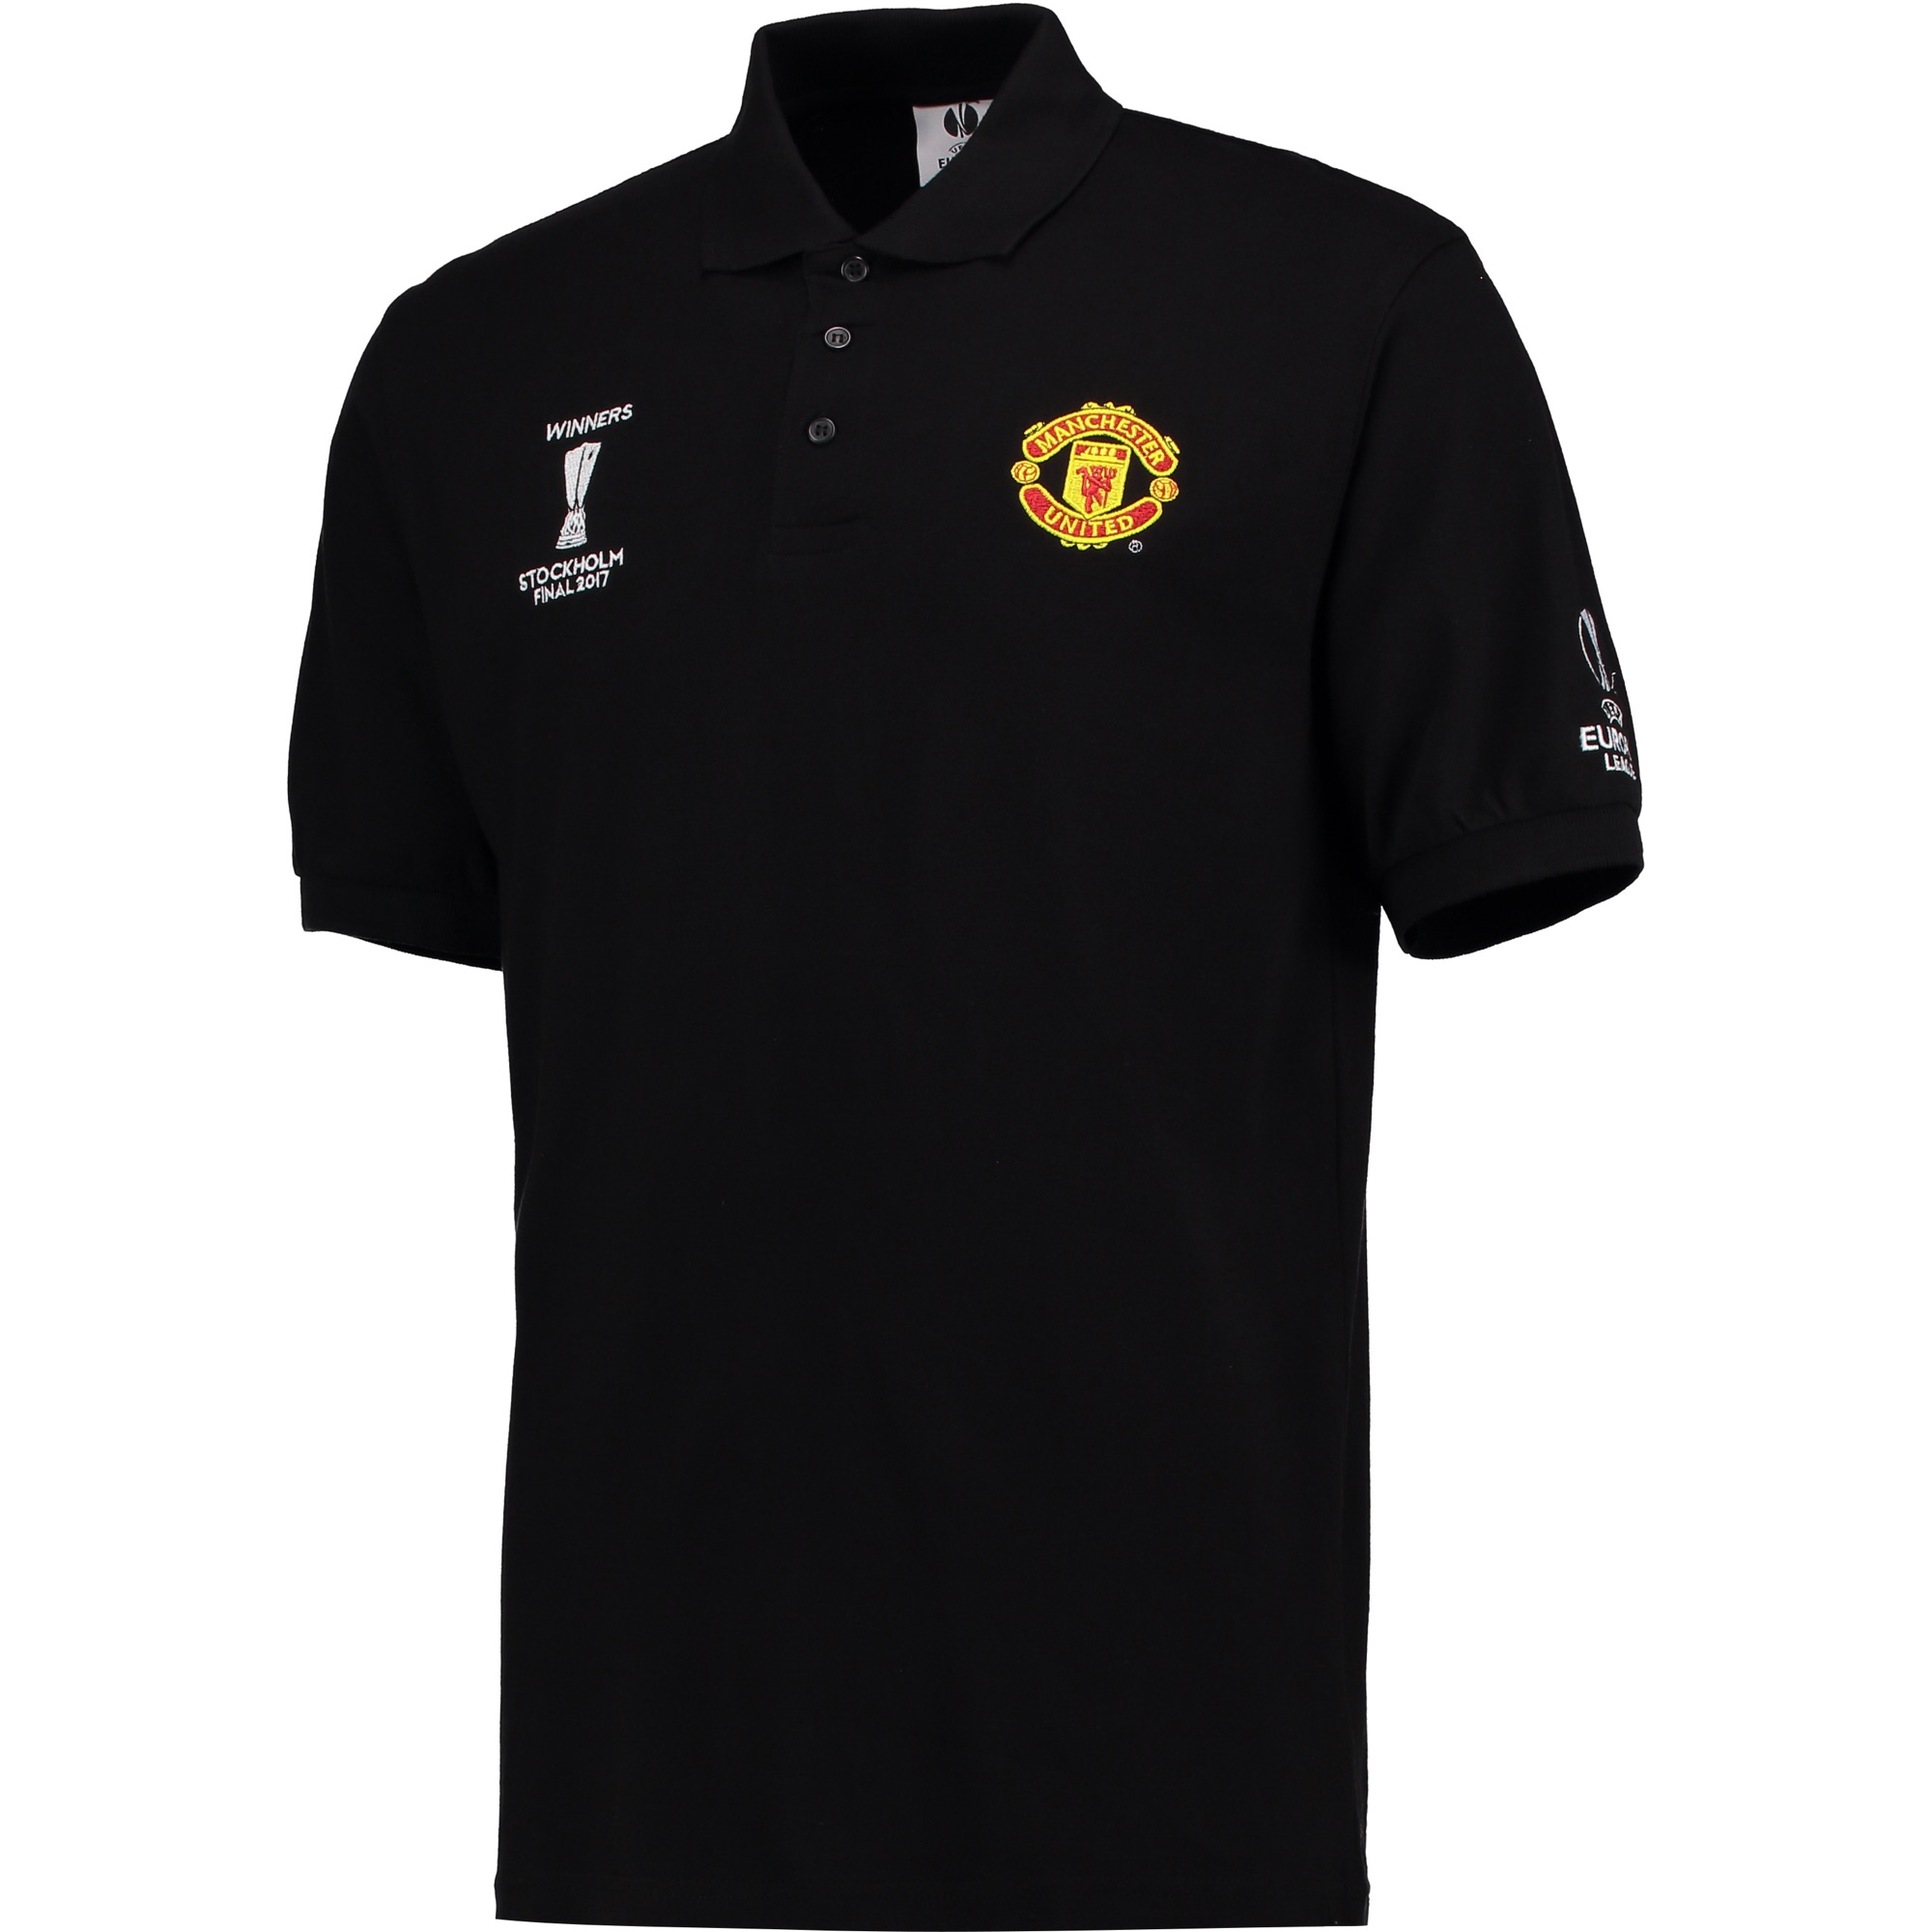 Manchester United Europa League 2017 Winners Polo Shirt - Black - Mens